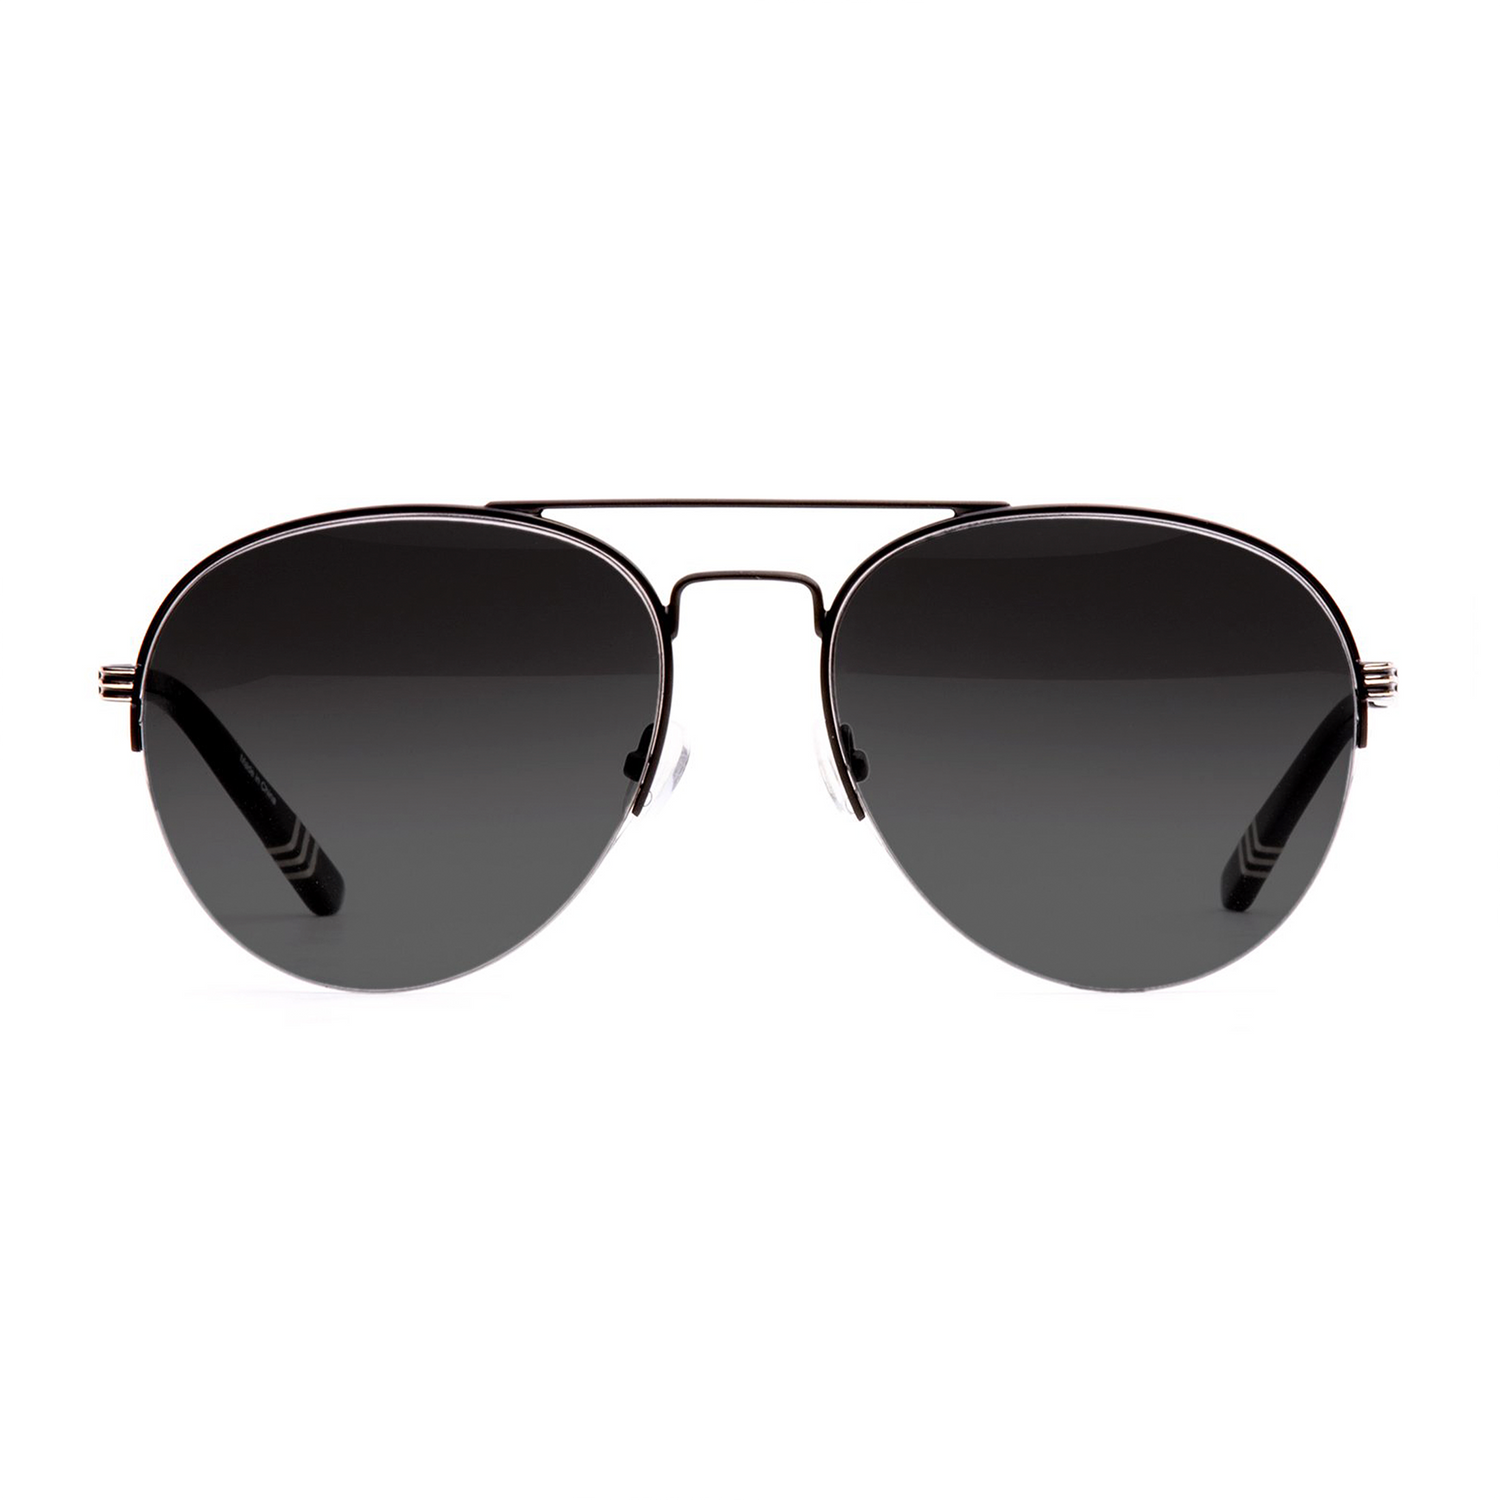 black-frames-with-black-gradient-lenses-and-matte-black-acetate-temple-tips